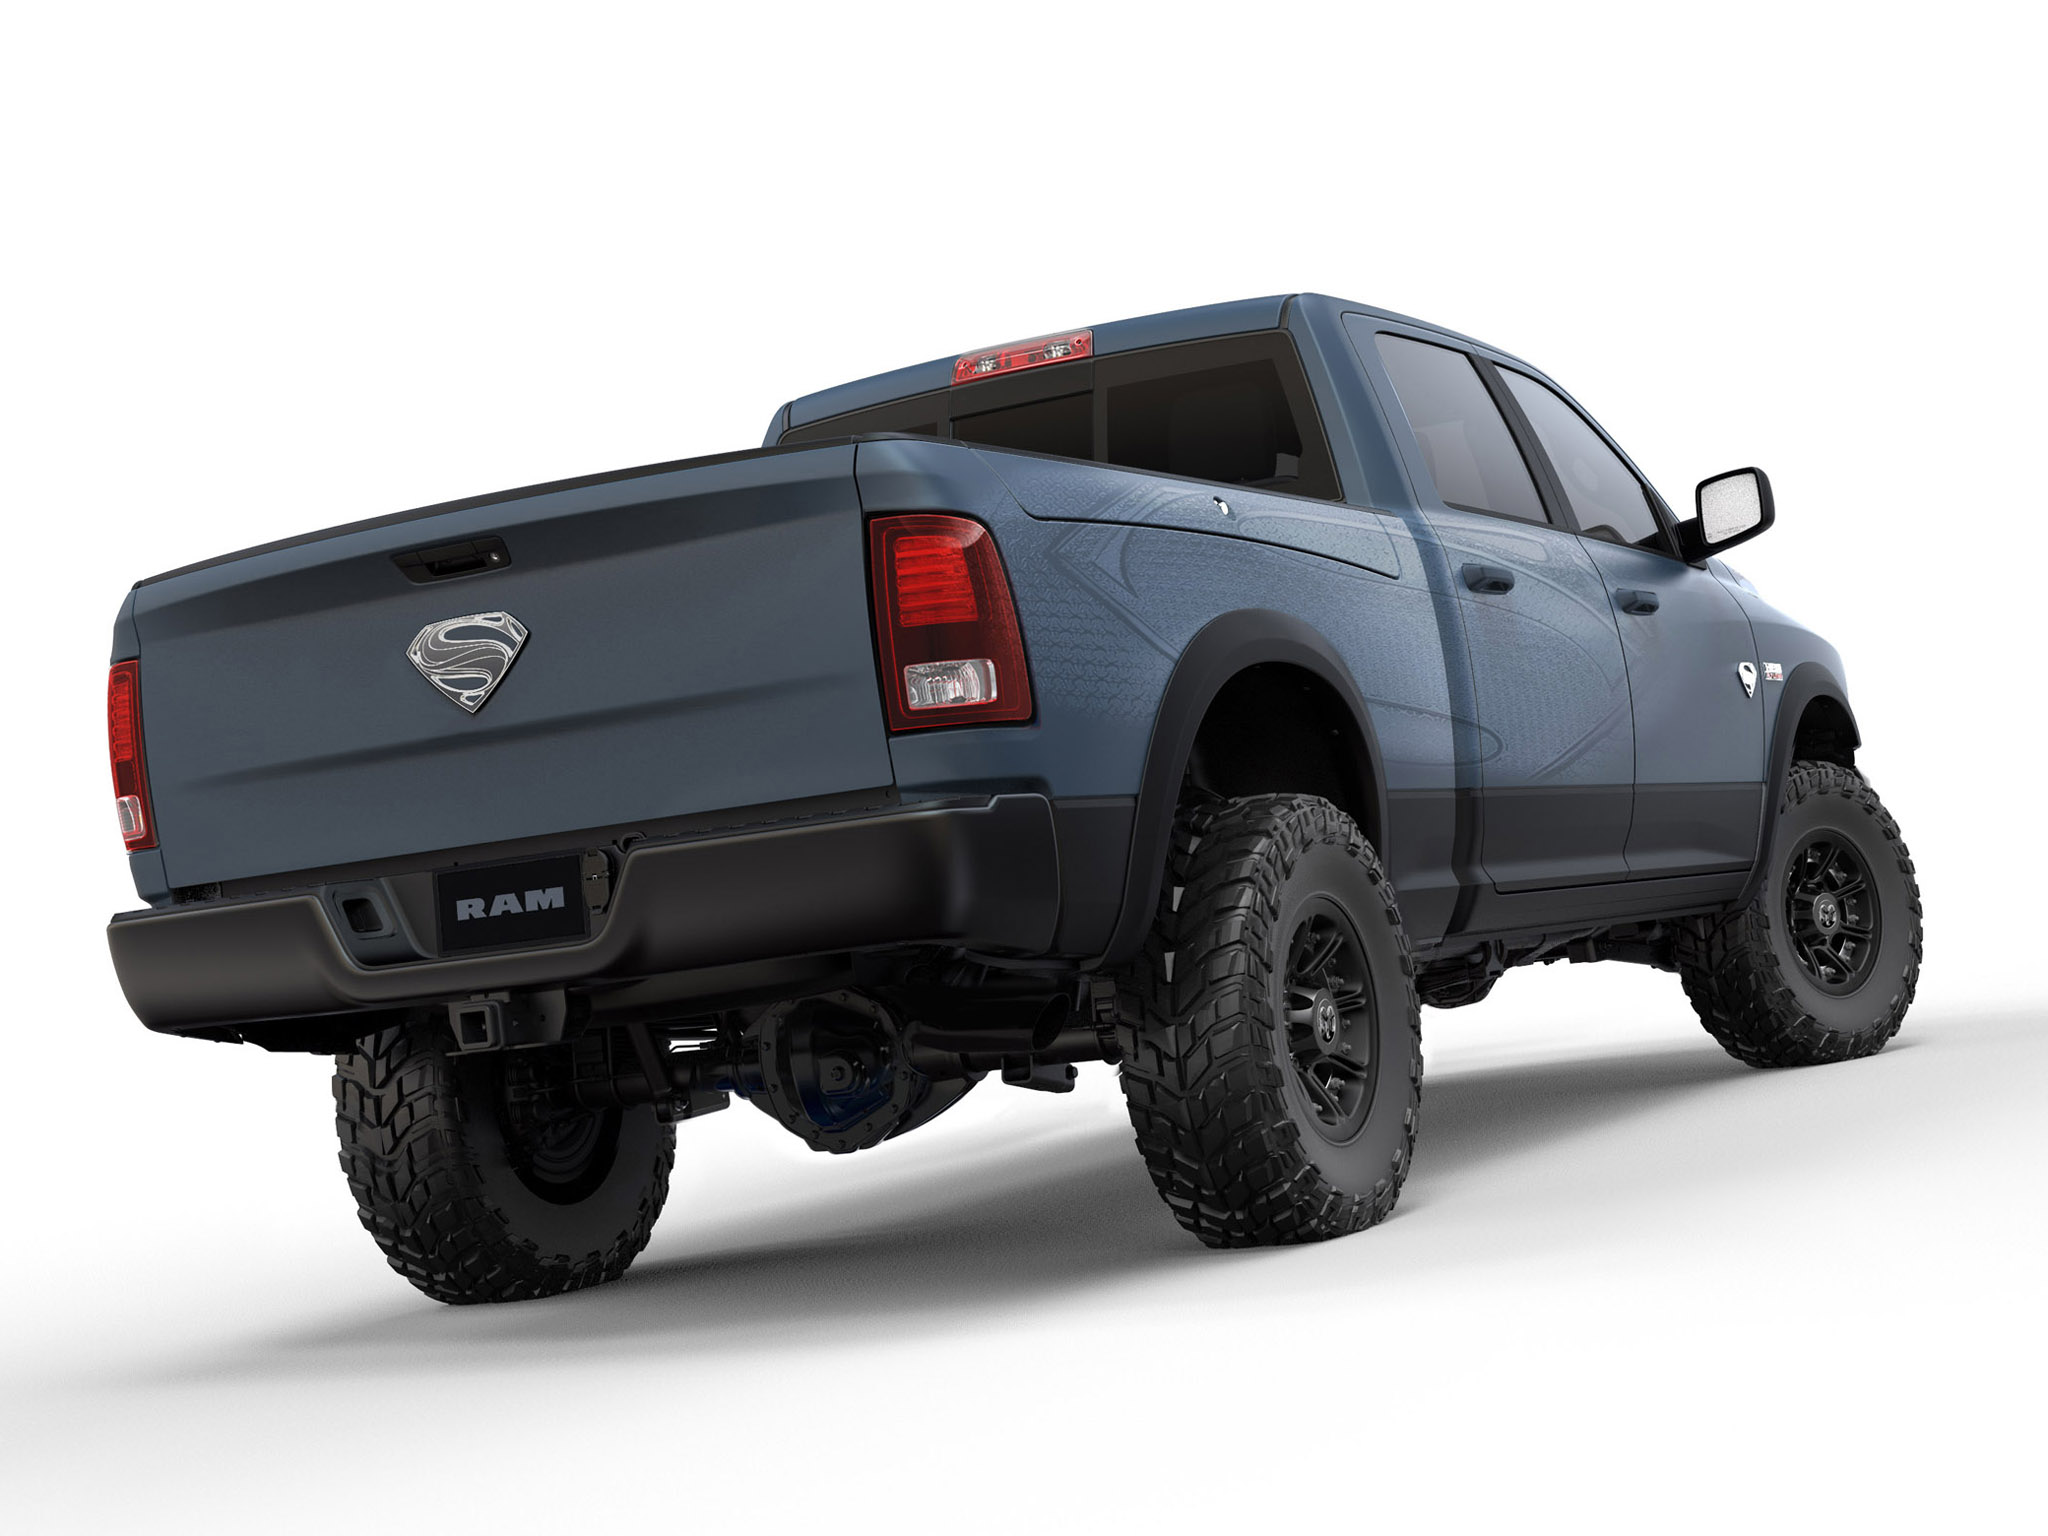 2013 dodge ram superman power wagon truck superhero movie movies 4x4 offroad. Cars Review. Best American Auto & Cars Review